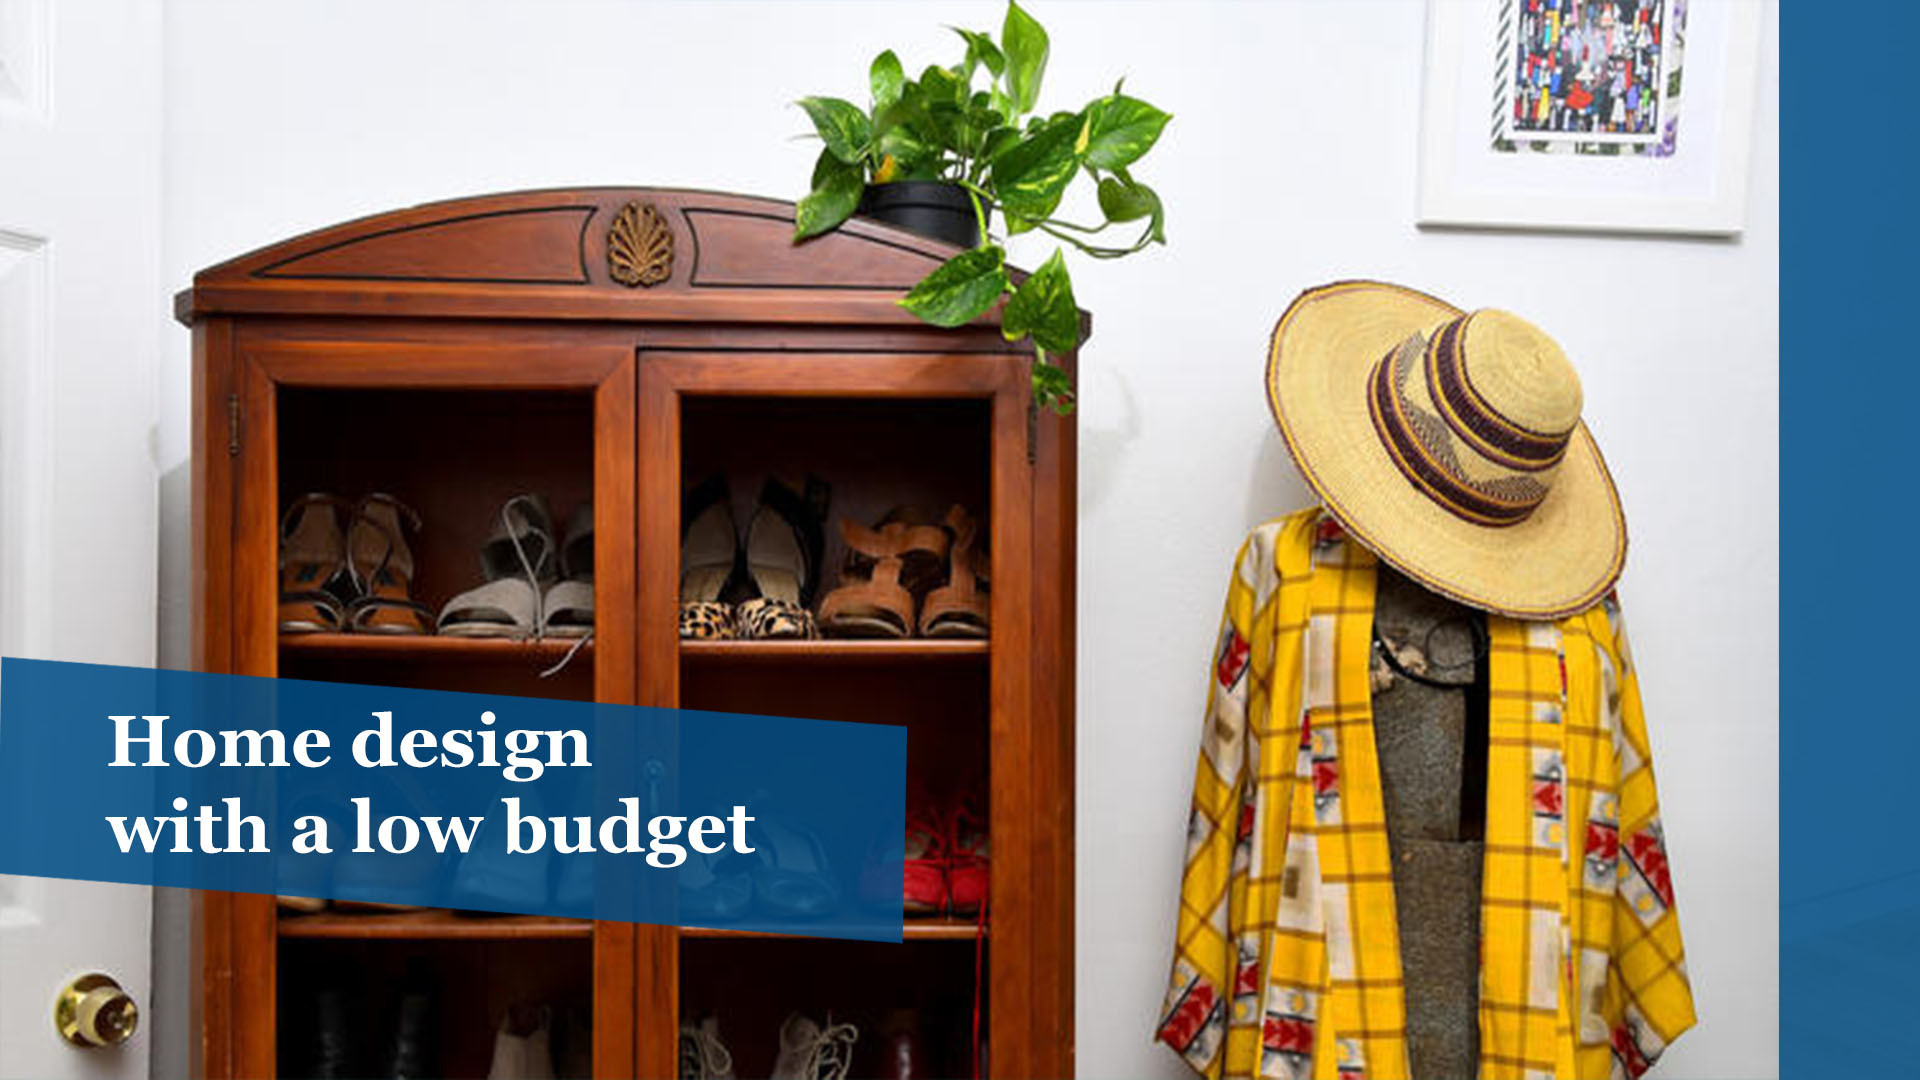 Home Design With High Standards Low Budget Chicago Tribune